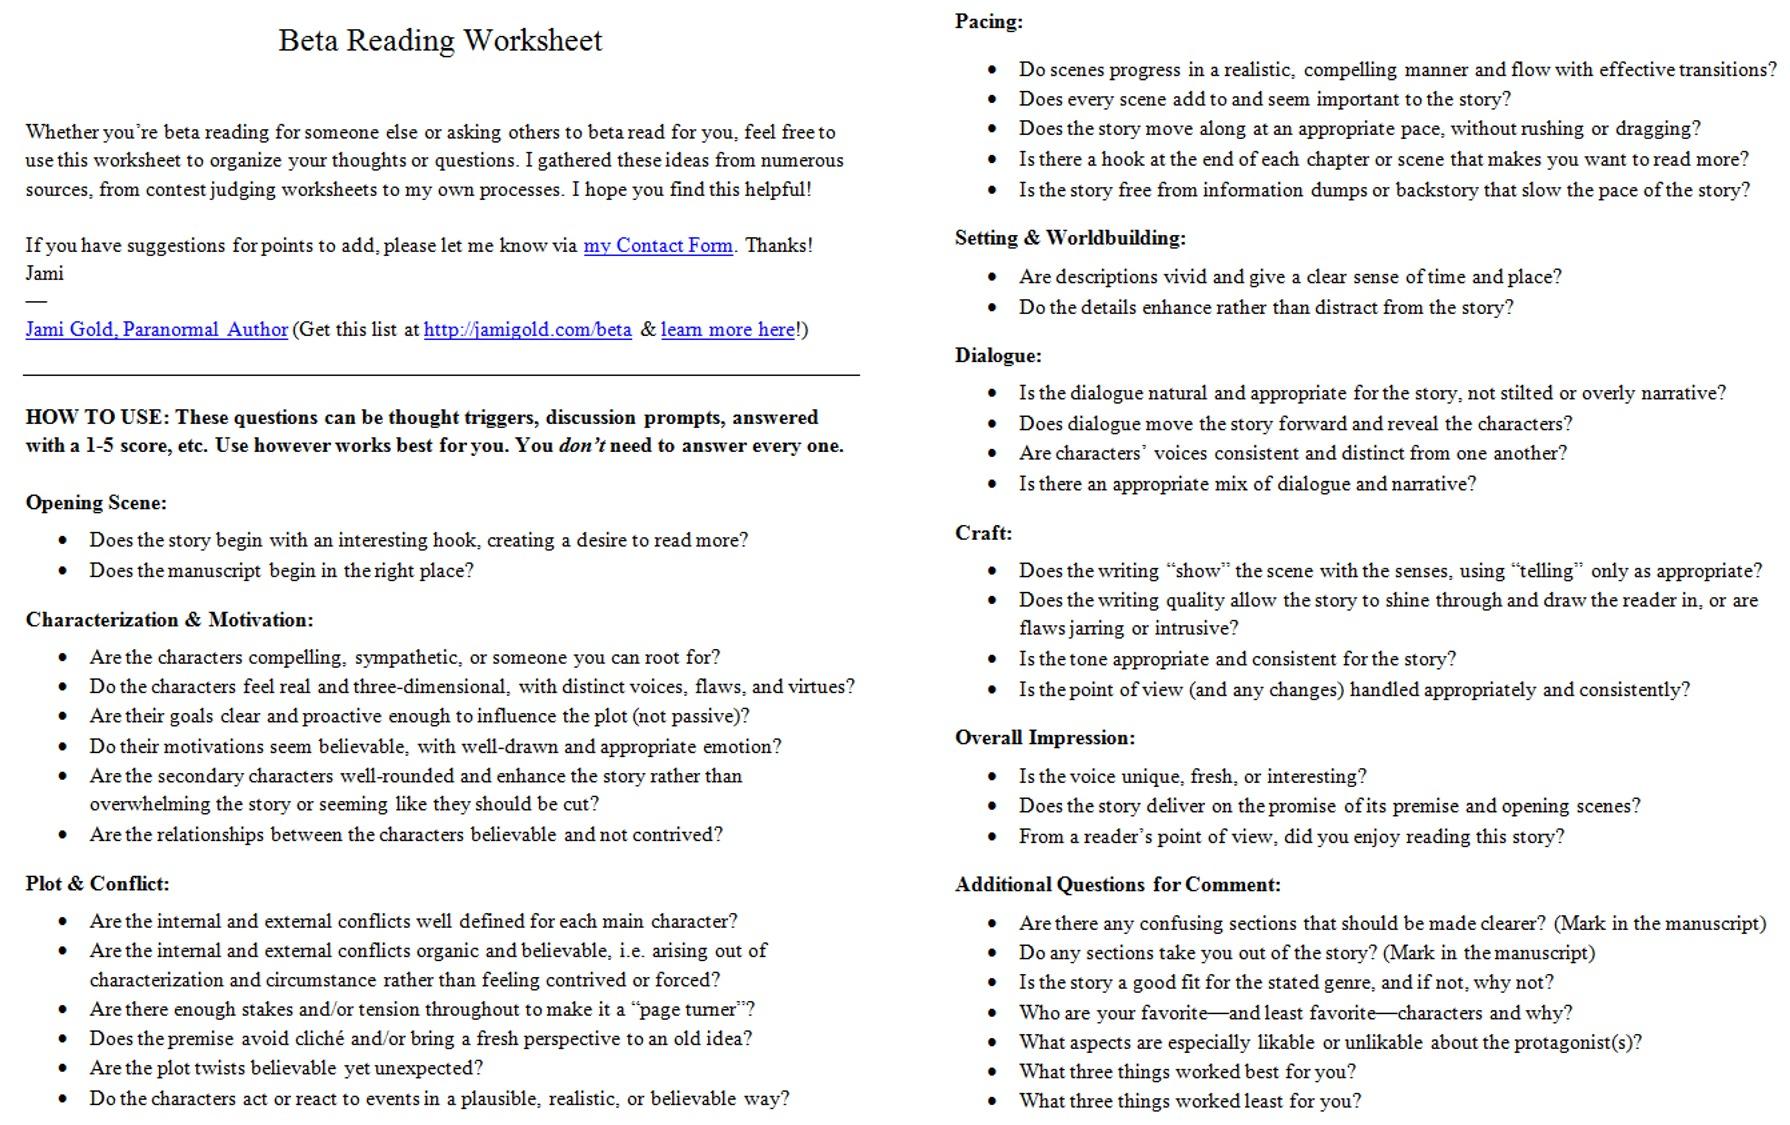 Aldiablosus  Splendid Worksheets For Writers  Jami Gold Paranormal Author With Lovable Screen Shot Of The Twopage Beta Reading Worksheet With Endearing Rd Grade Math Printable Worksheets Also Electrons In Atoms Worksheet Answers In Addition Circles Worksheet And Missing Addends Worksheets As Well As Literal Equations Worksheet Answers Additionally Bill Nye Erosion Worksheet From Jamigoldcom With Aldiablosus  Lovable Worksheets For Writers  Jami Gold Paranormal Author With Endearing Screen Shot Of The Twopage Beta Reading Worksheet And Splendid Rd Grade Math Printable Worksheets Also Electrons In Atoms Worksheet Answers In Addition Circles Worksheet From Jamigoldcom